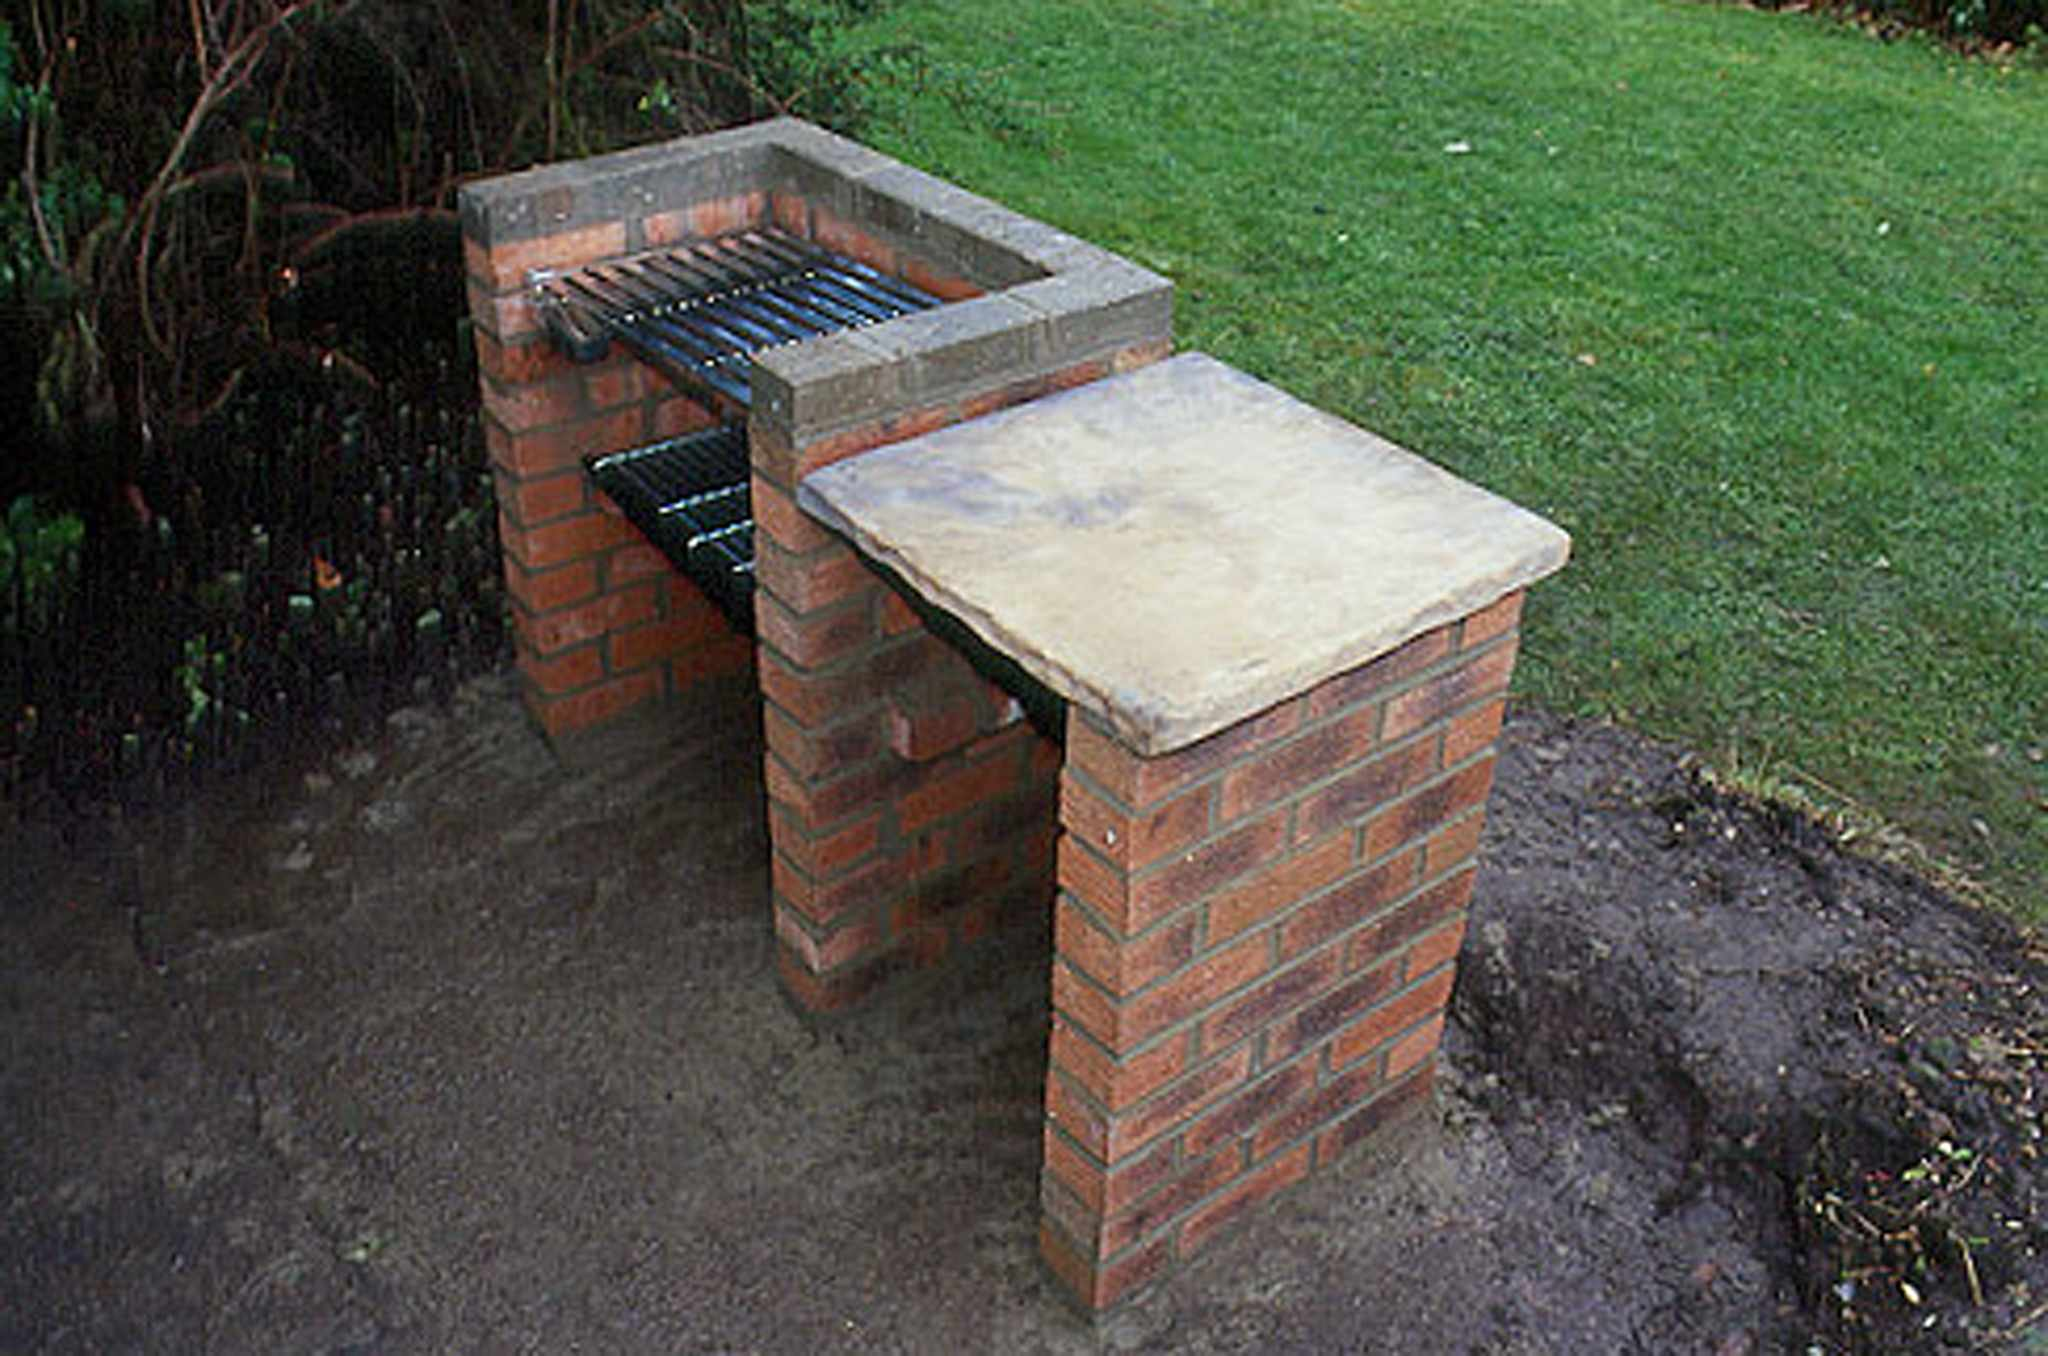 A brick barbecue